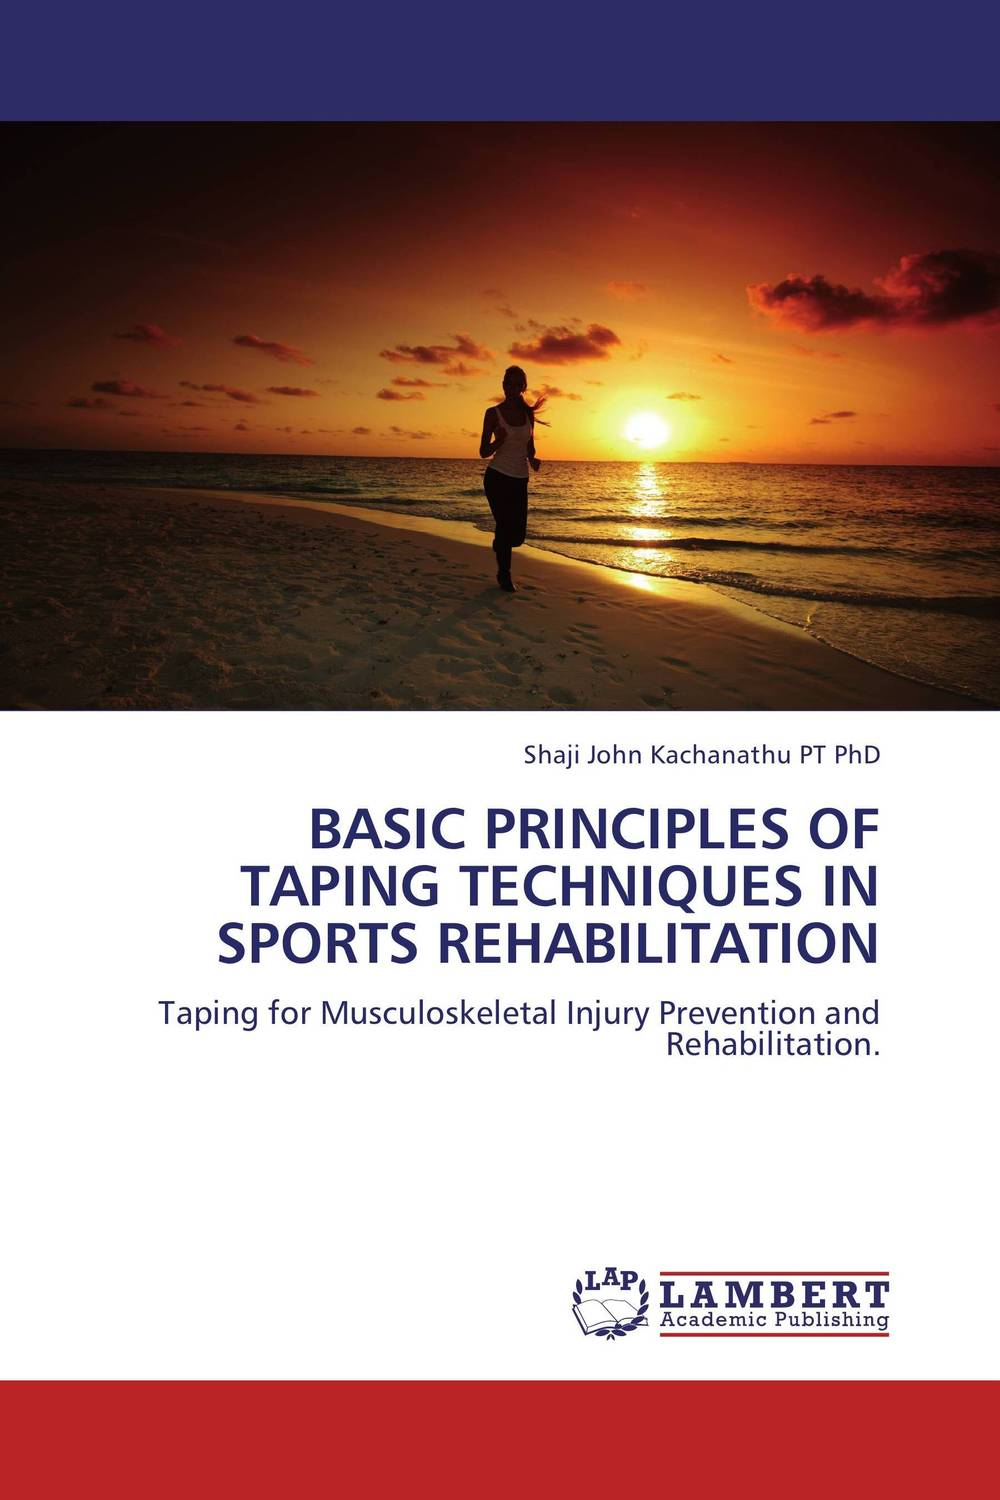 Basic Principles of Taping Techniques in Sports Rehabilitation